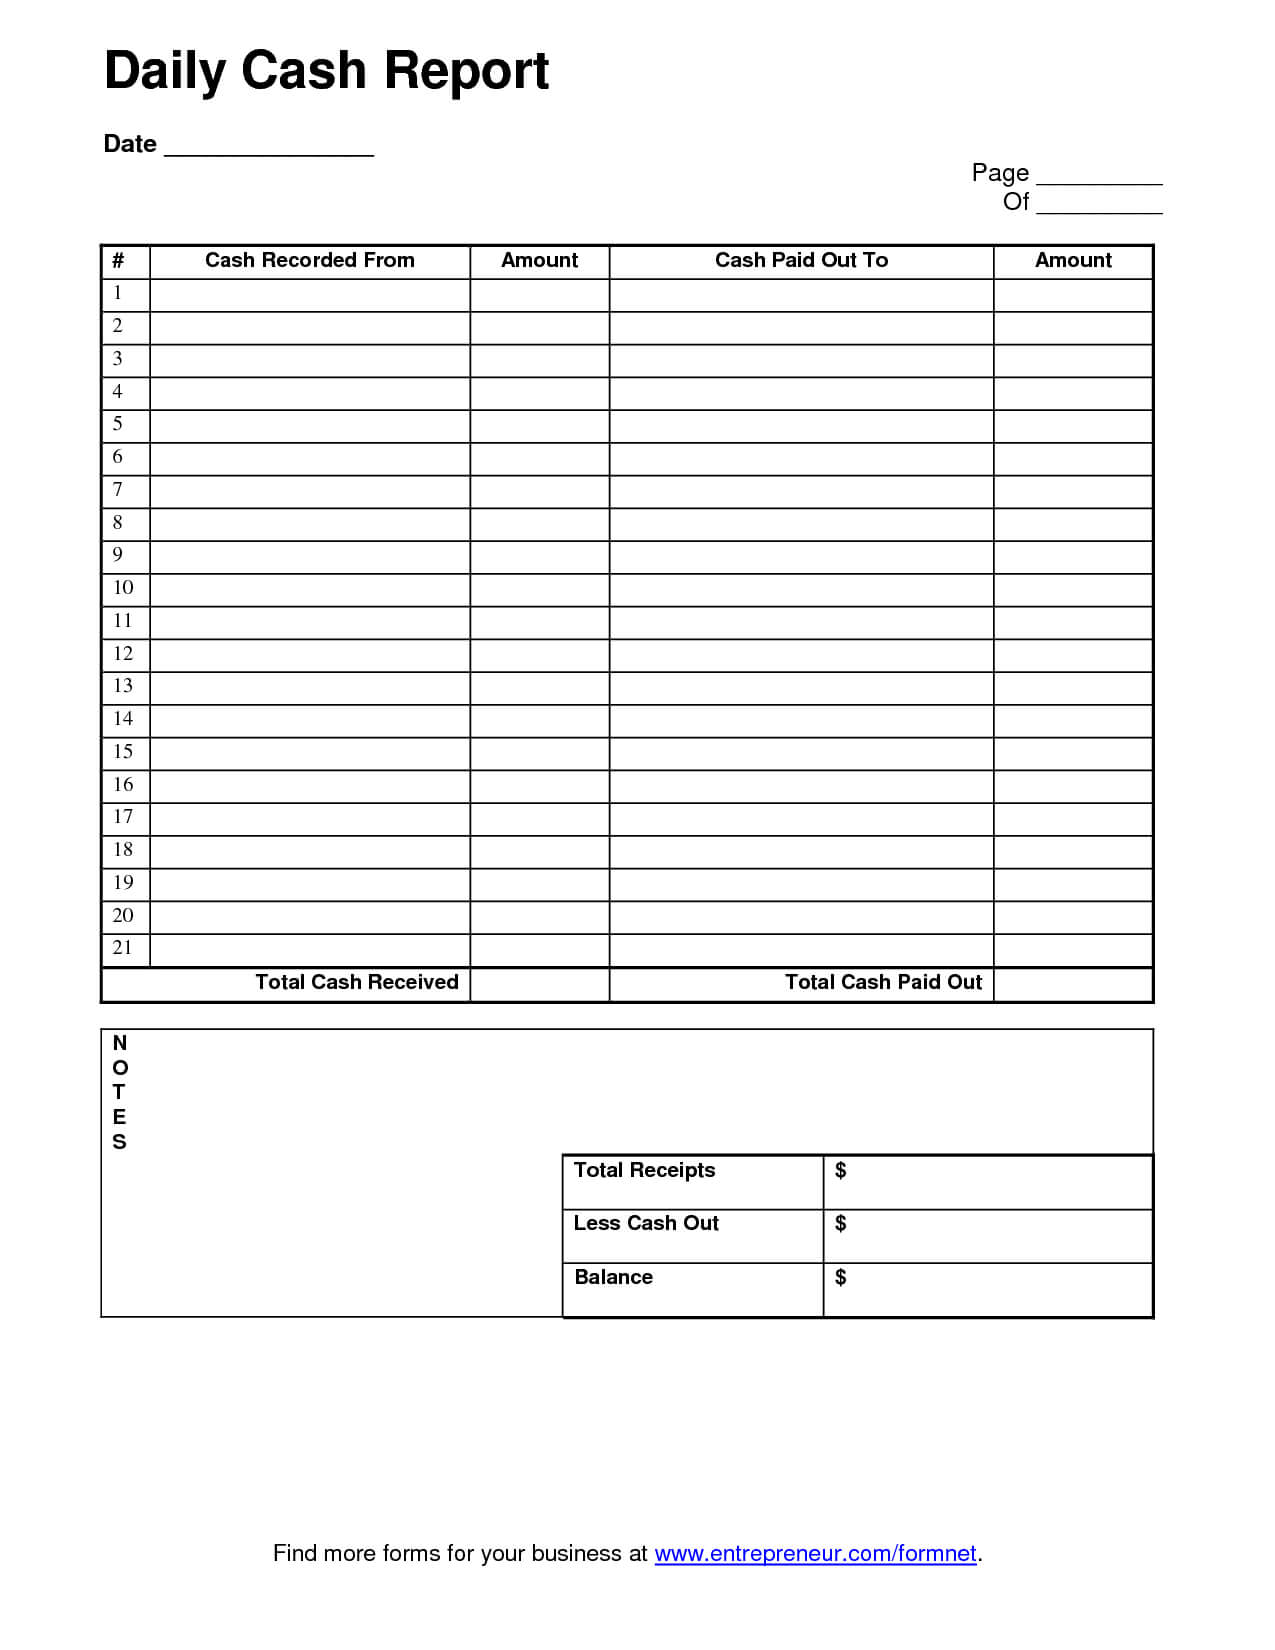 Daily Cash Sheet Template | Daily Report Template Inside Daily Report Sheet Template